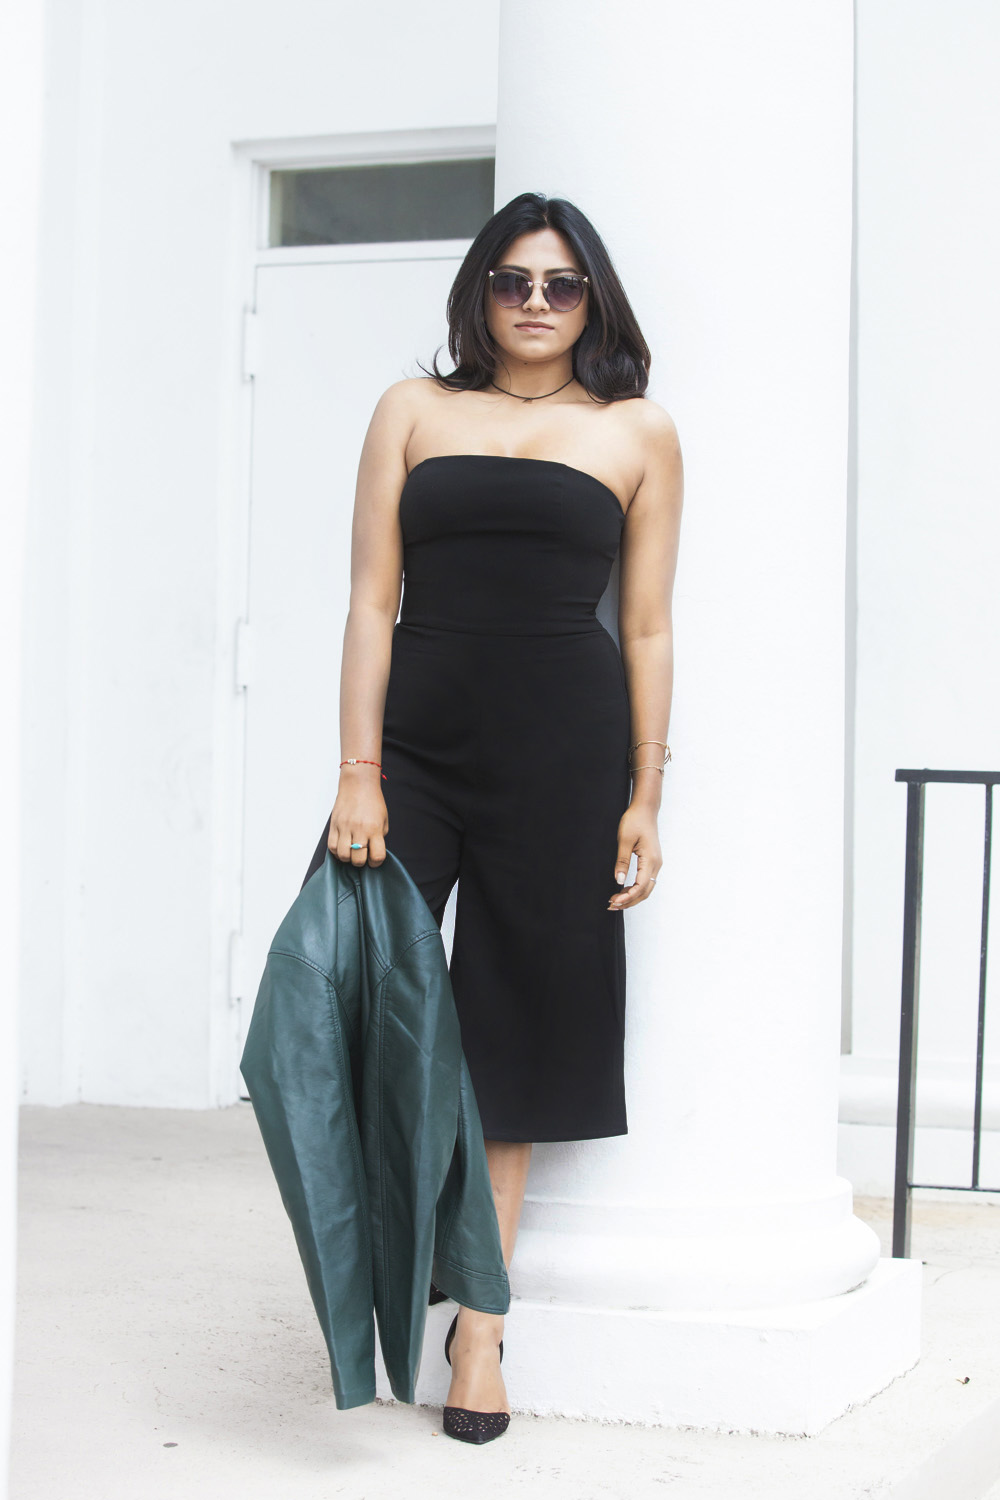 Tobi Black Jumpsuit and green jacket OOTD